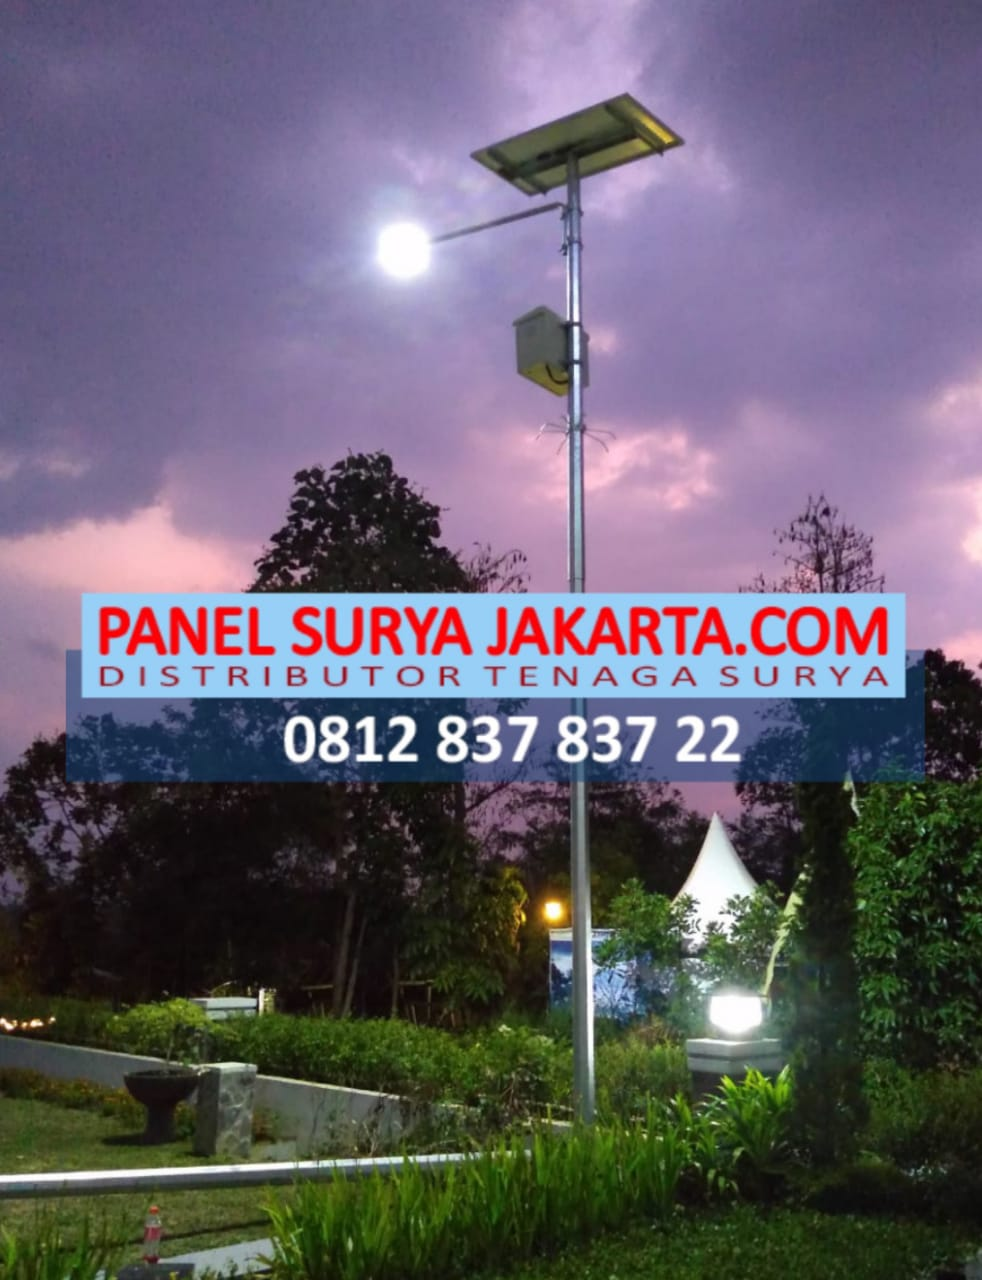 pju solar cell all in one philips 40 watt, pjuts all in one philips 40 watt, pju tenaga surya philips 40 watt, pju all in one solar panel 40 watt, 50 watt, 60 watt, 30 watt, 80 watt, 100 watt, lampu jalan tenaga surya